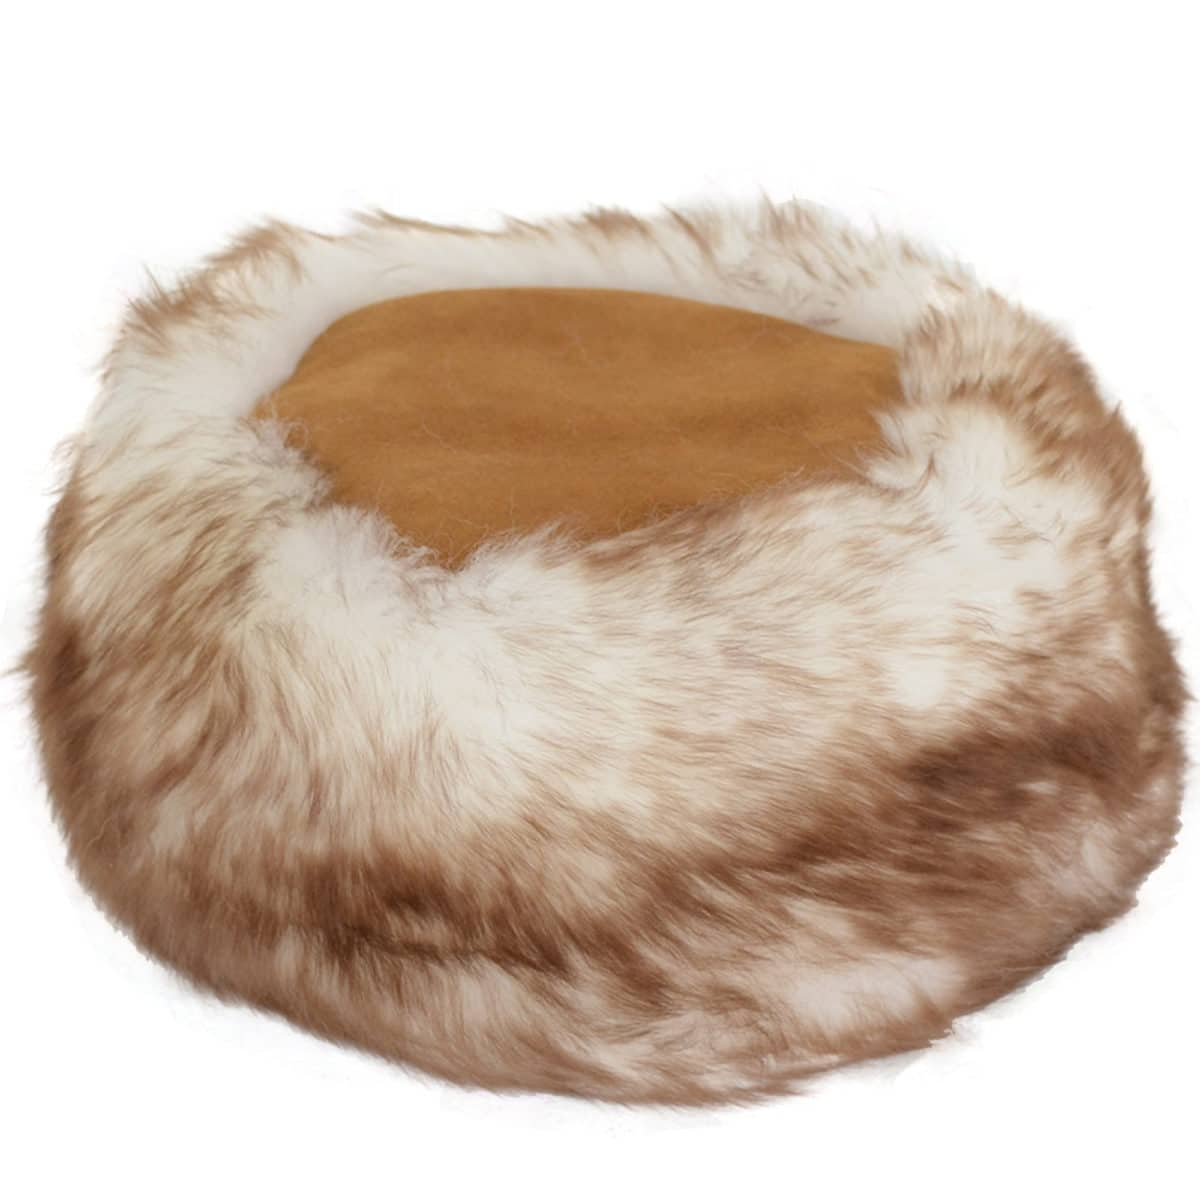 Brigit - Ladies Full Sheepskin Cossack Style Hat - Tan